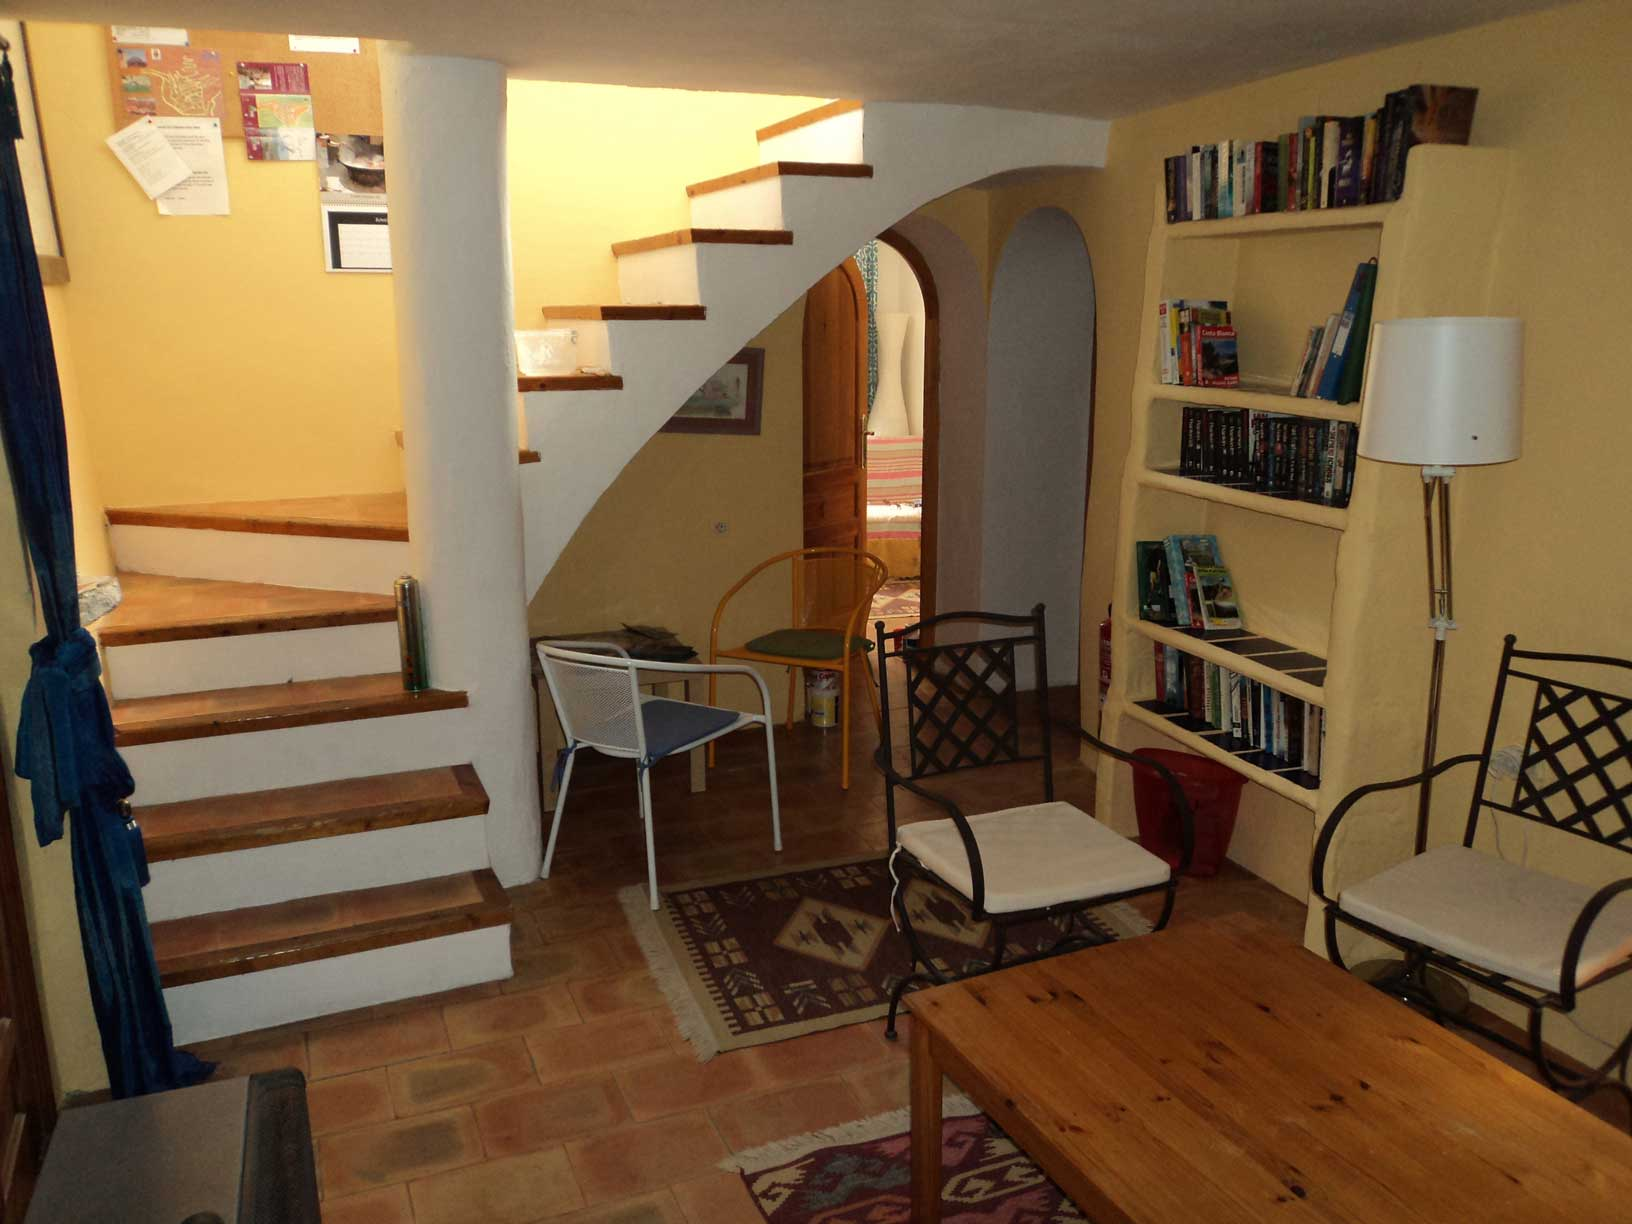 Roc-House-downstairs-with-stairs-and-round-doors